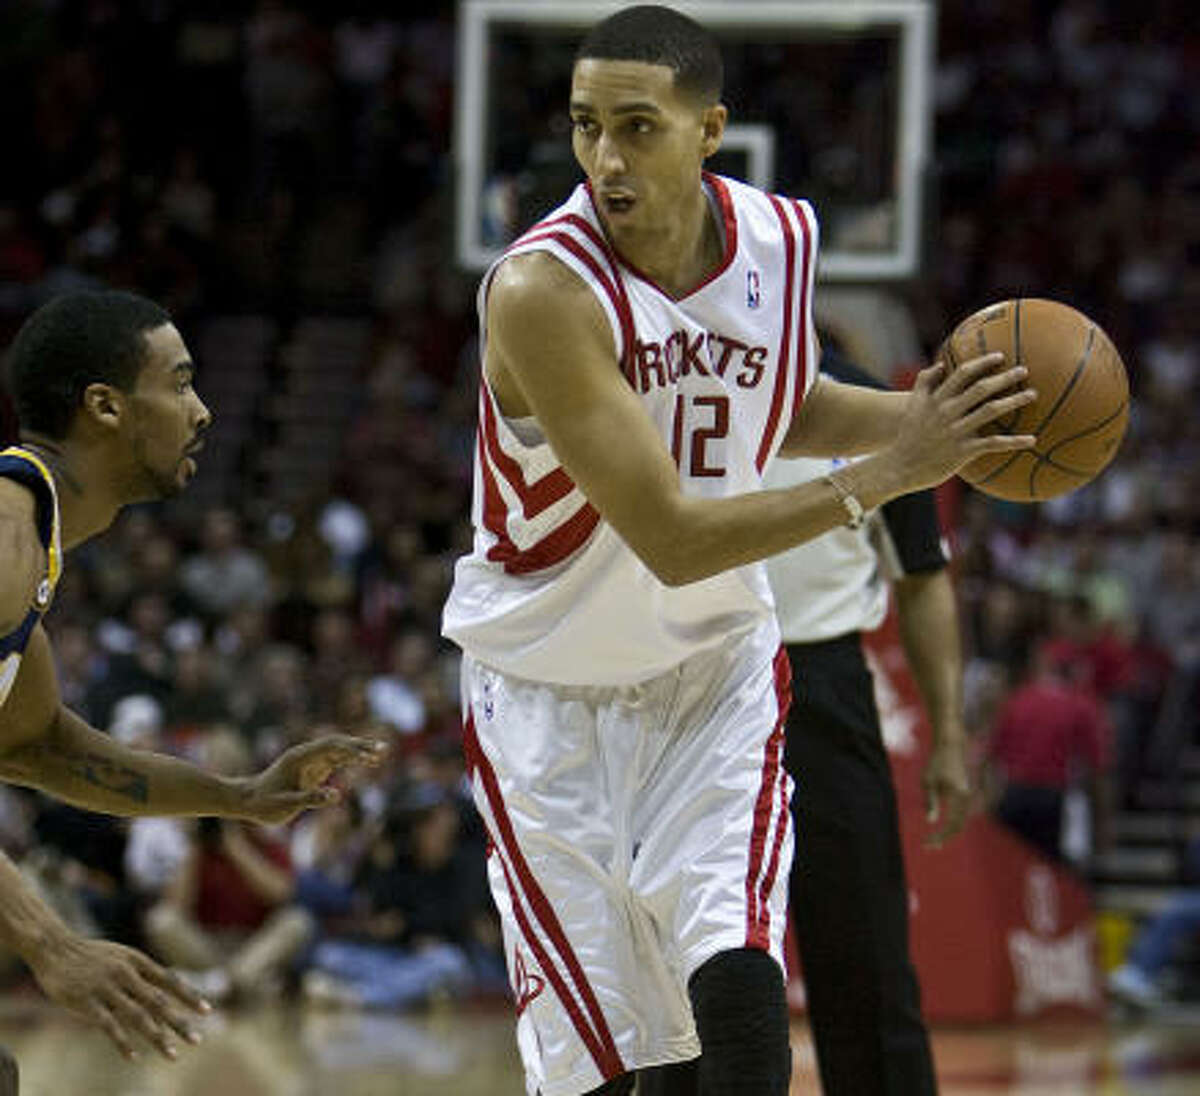 Recently acquired guard Kevin Martin came off the bench in his Rockets debut against the Pacers on Saturday at Toyota Center. He played 31 minutes and shot only 3-of-16 for 14 points, as the Rockets fell 125-115.